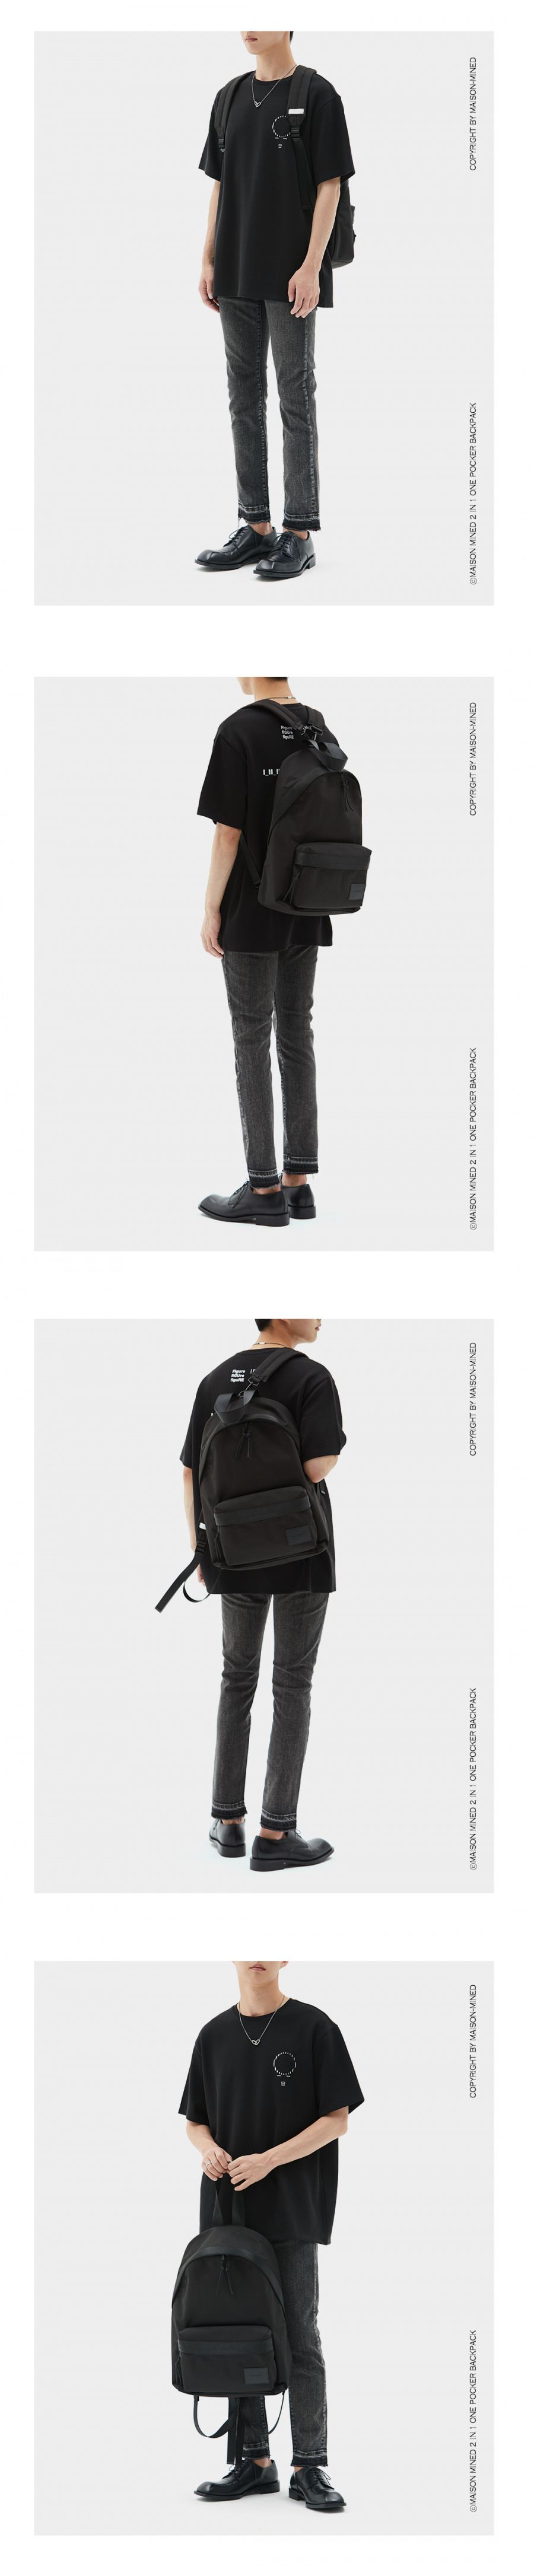 메종미네드(MAISON MINED) 2 IN 1 ONE POCKET BACKPACK